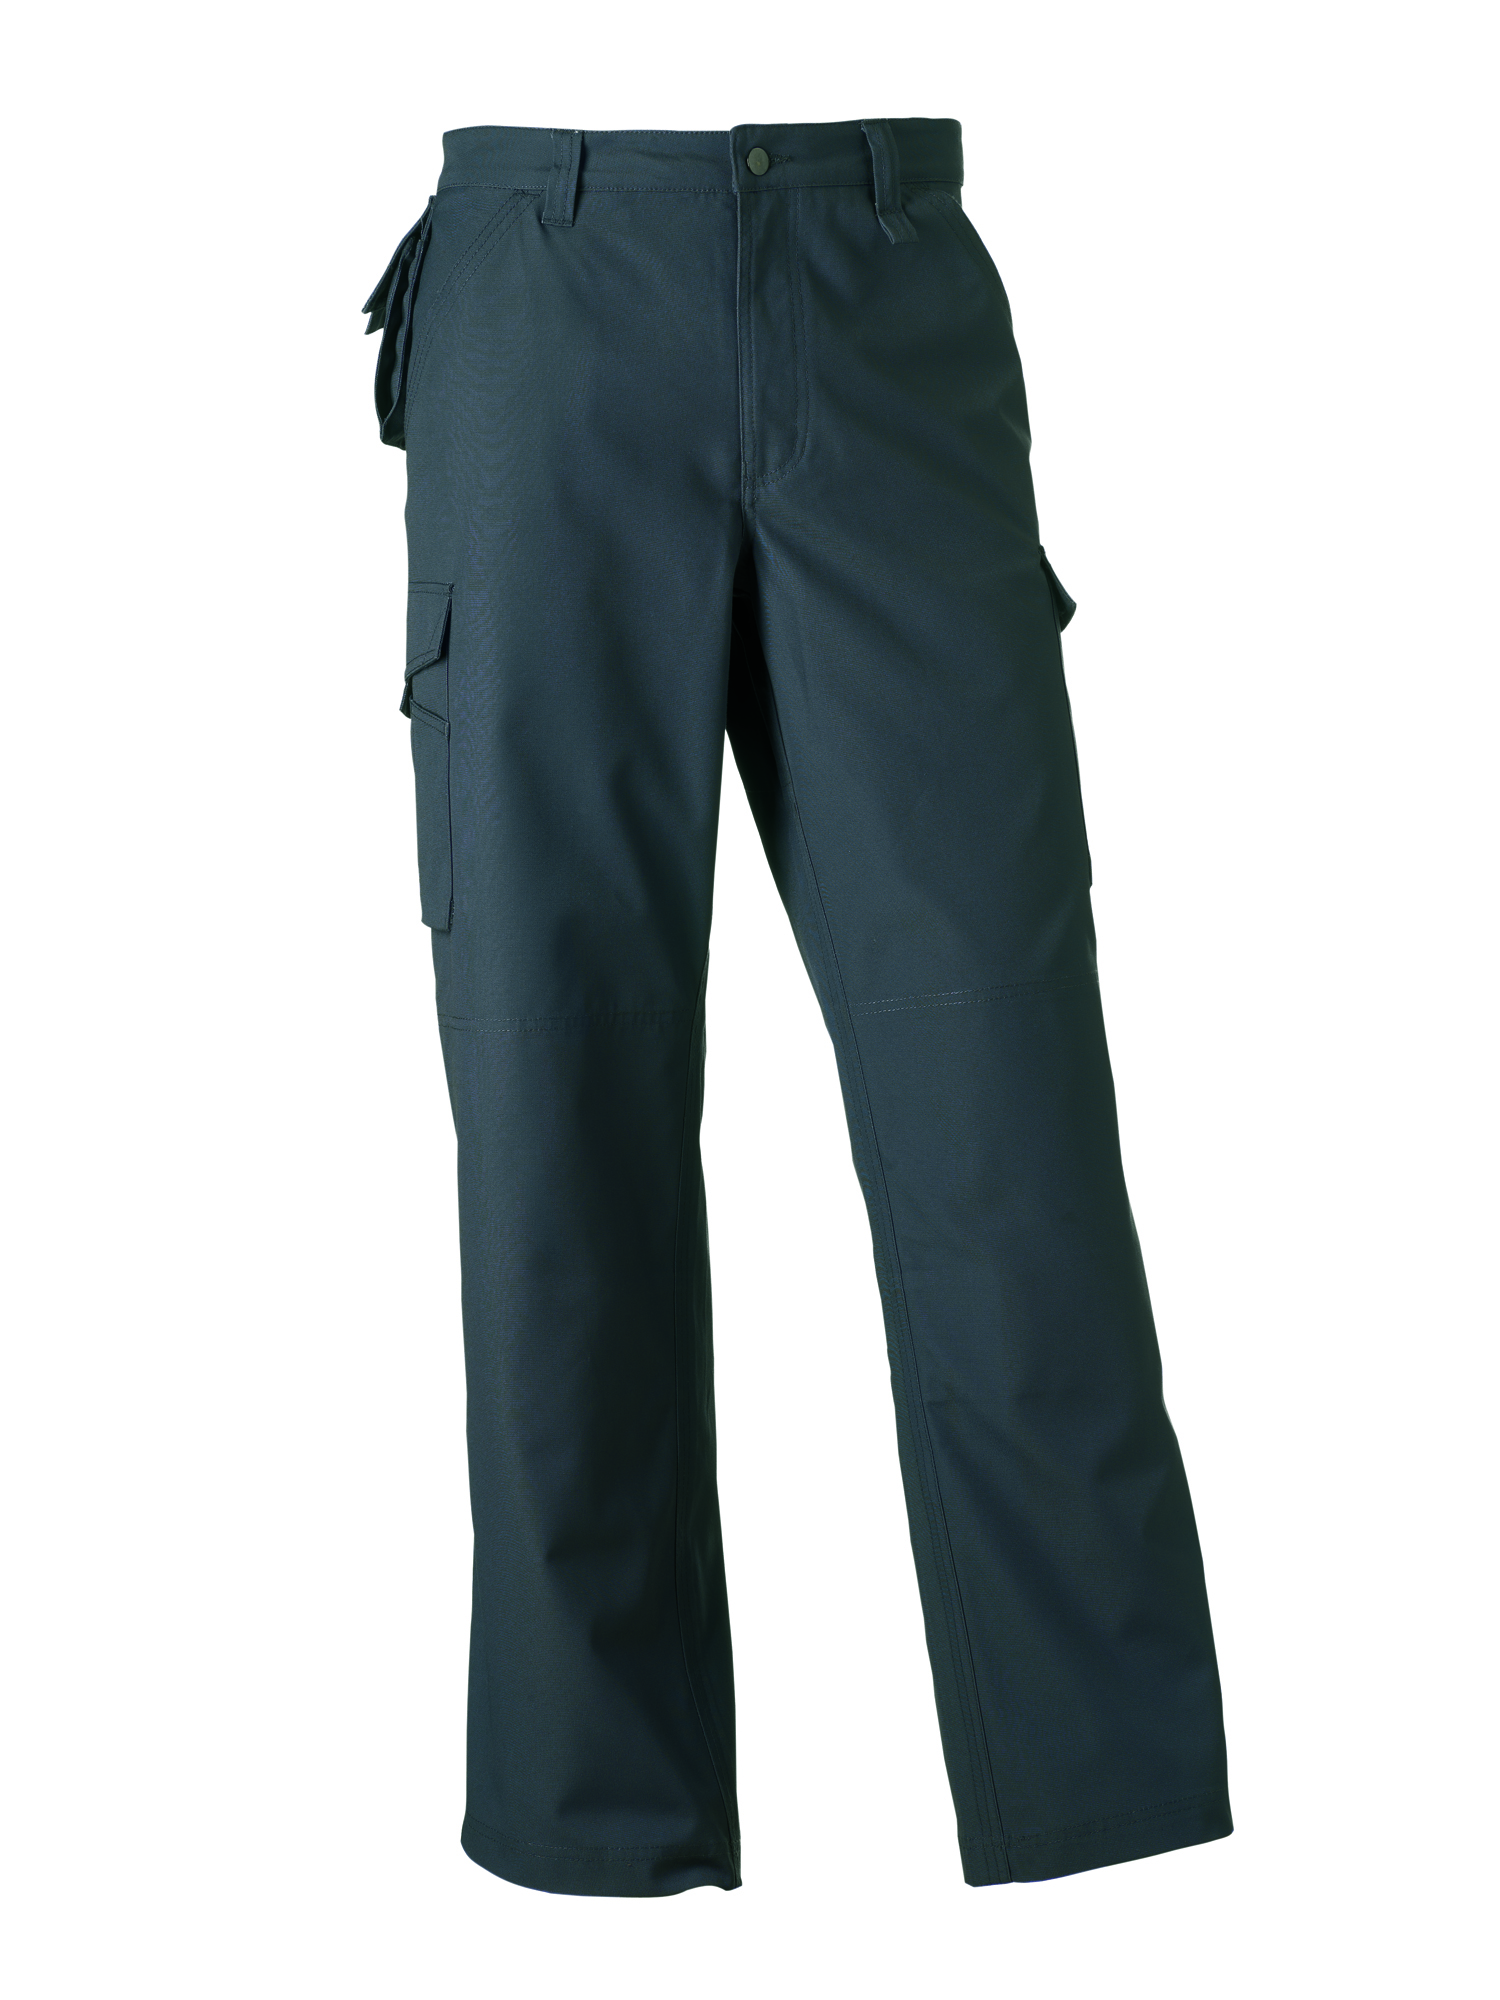 Heavy Duty Trousers  - Convoy Grey - 44-32